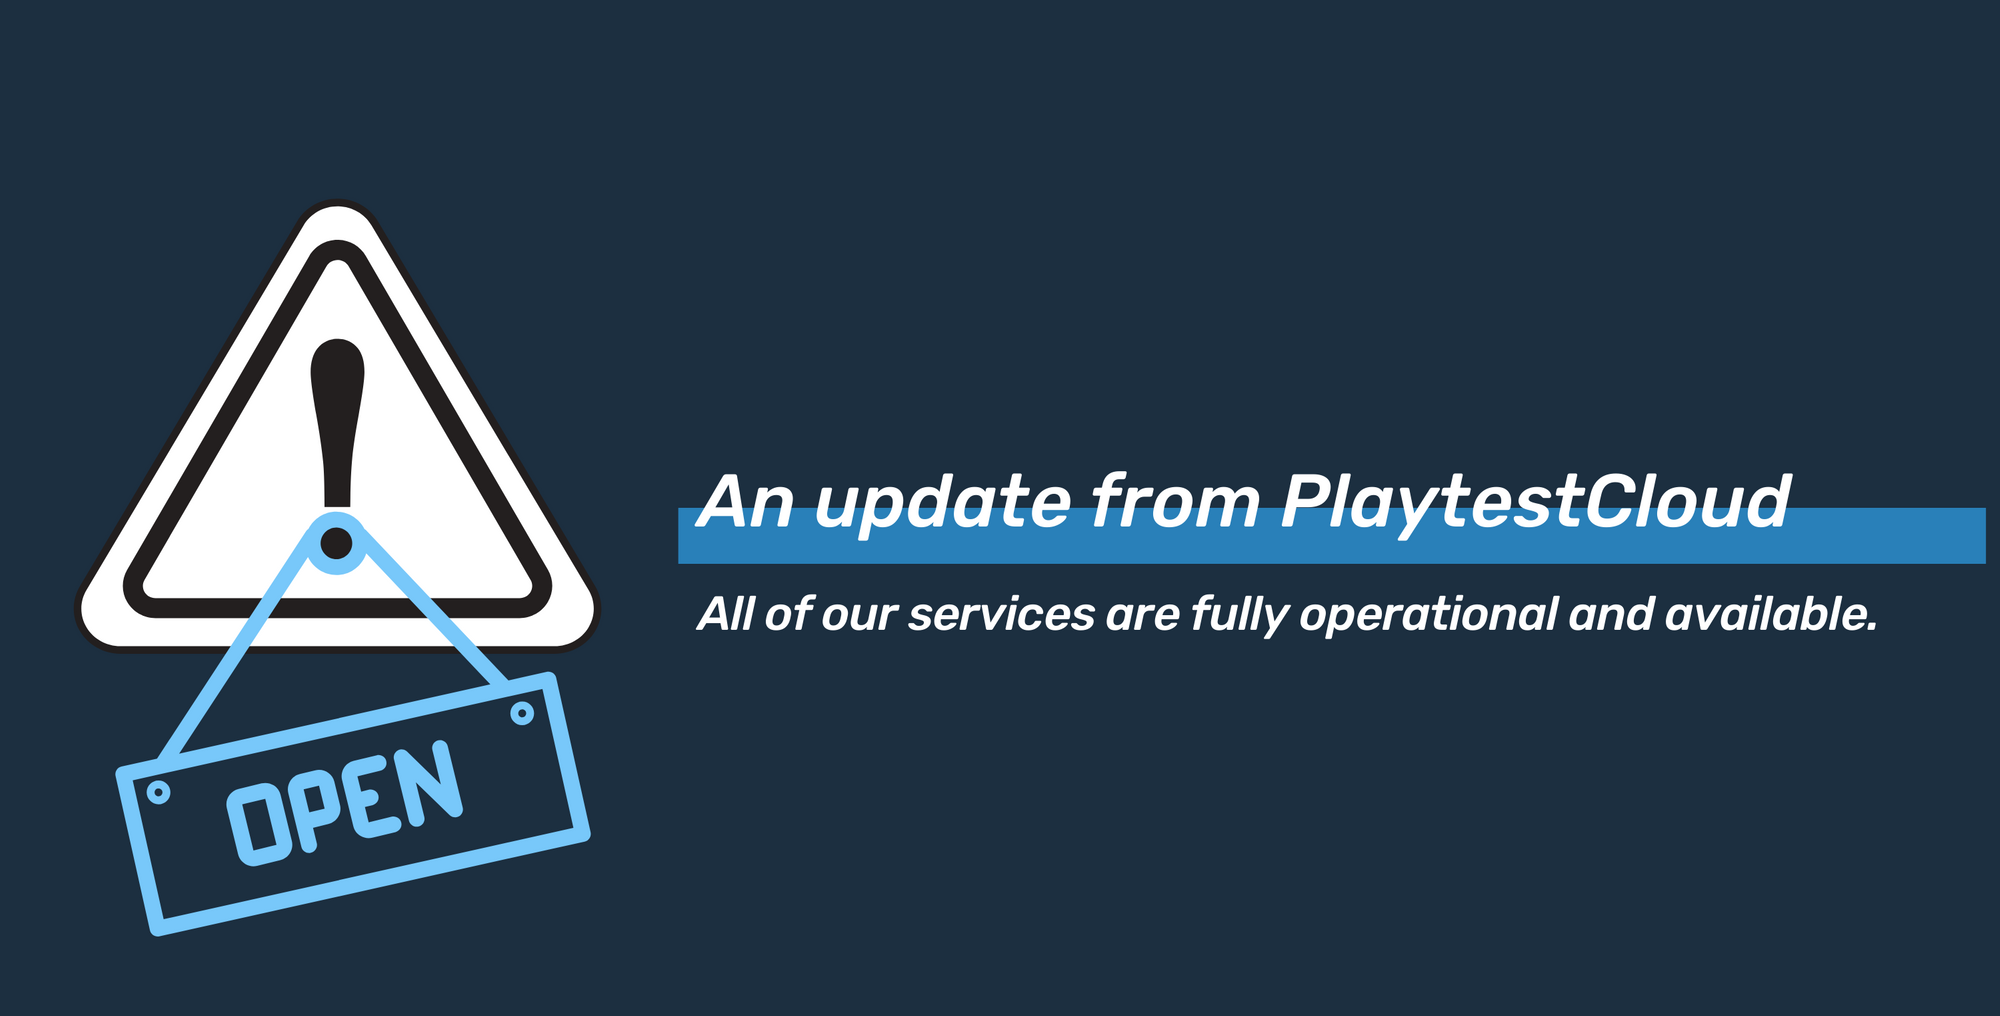 A statement from PlaytestCloud regarding COVID-19